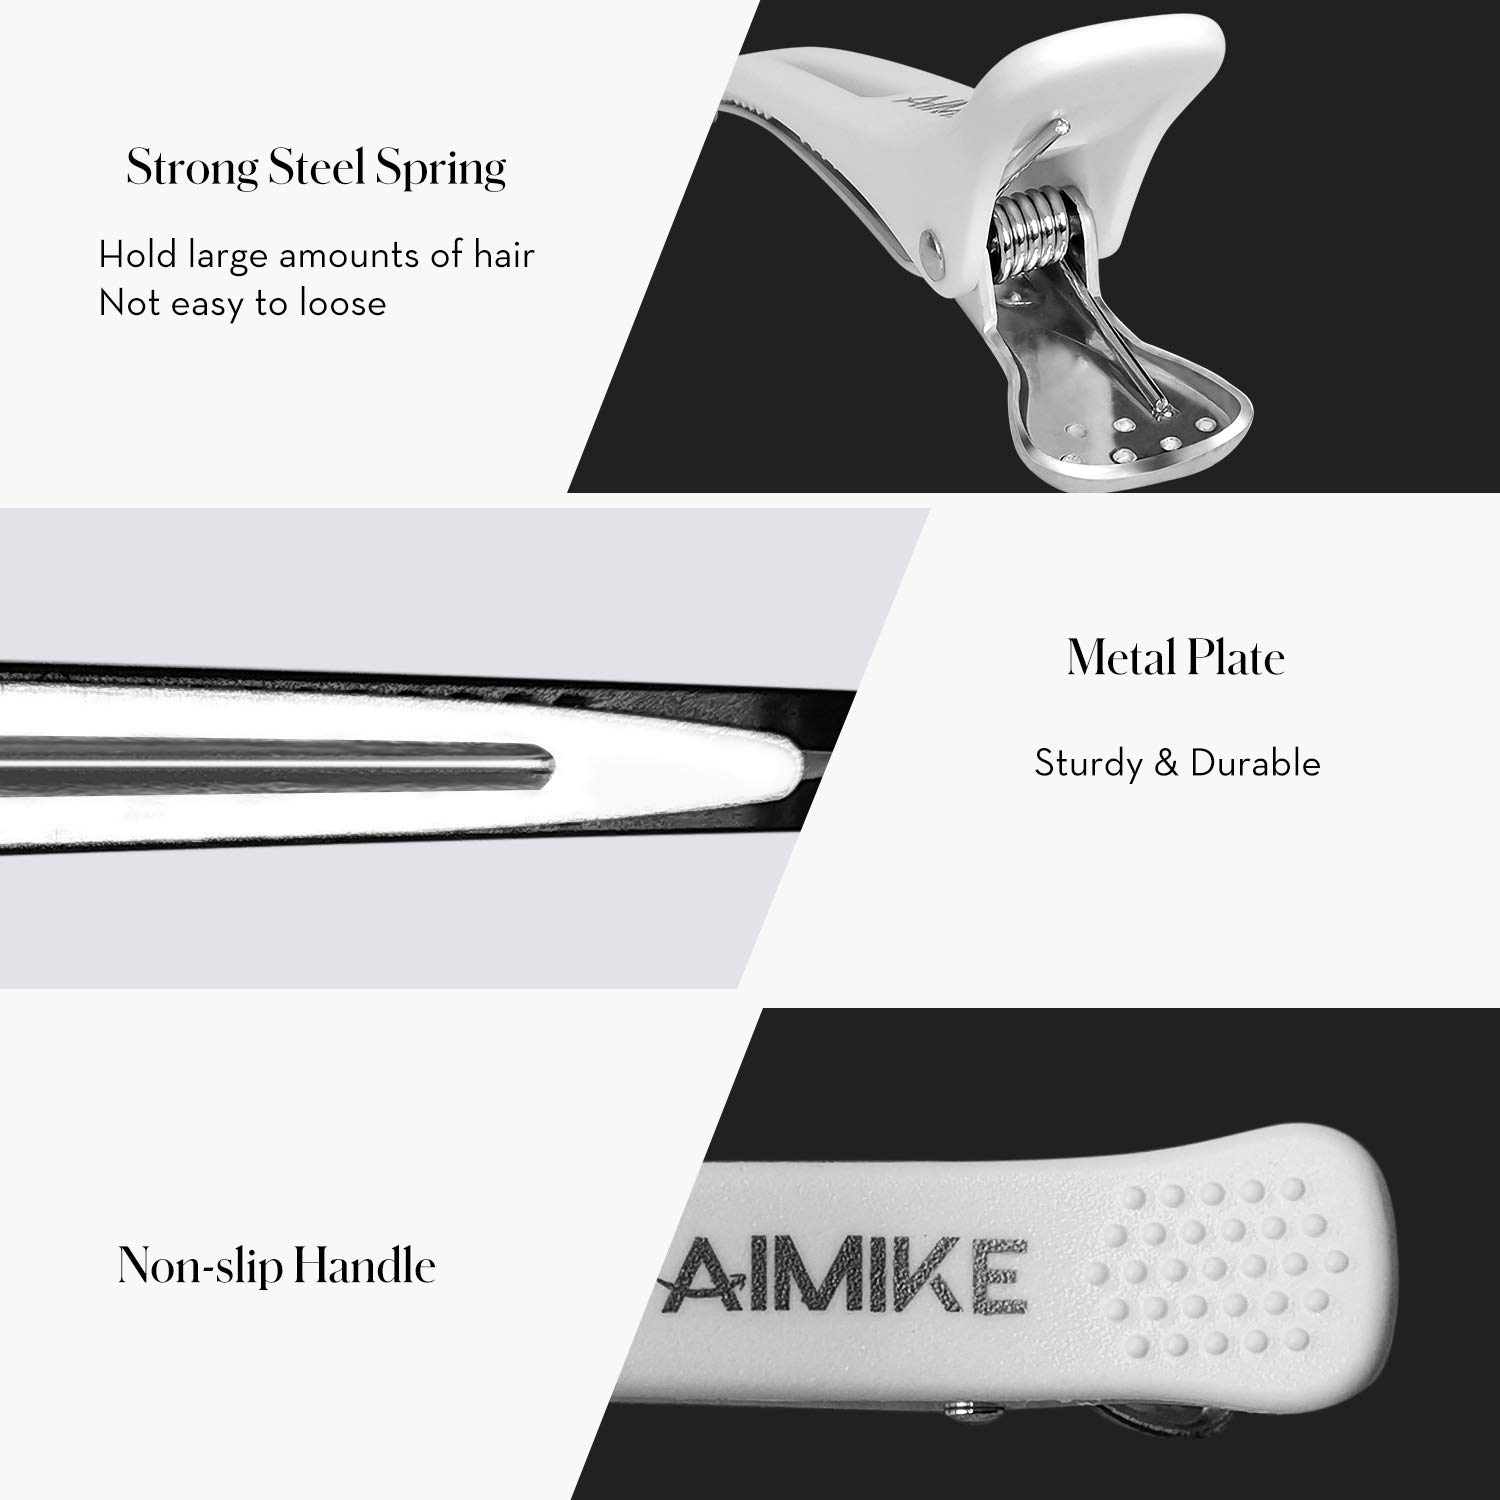 Hair Clips, AIMIKE 6 Pack Hair Clips for Styling and Sectioning, Non Slip Hair Clips with Silicone Band, No-Trace Hair Clips for Thick and Thin Hair - Professional Salon Hair Clips : Beauty